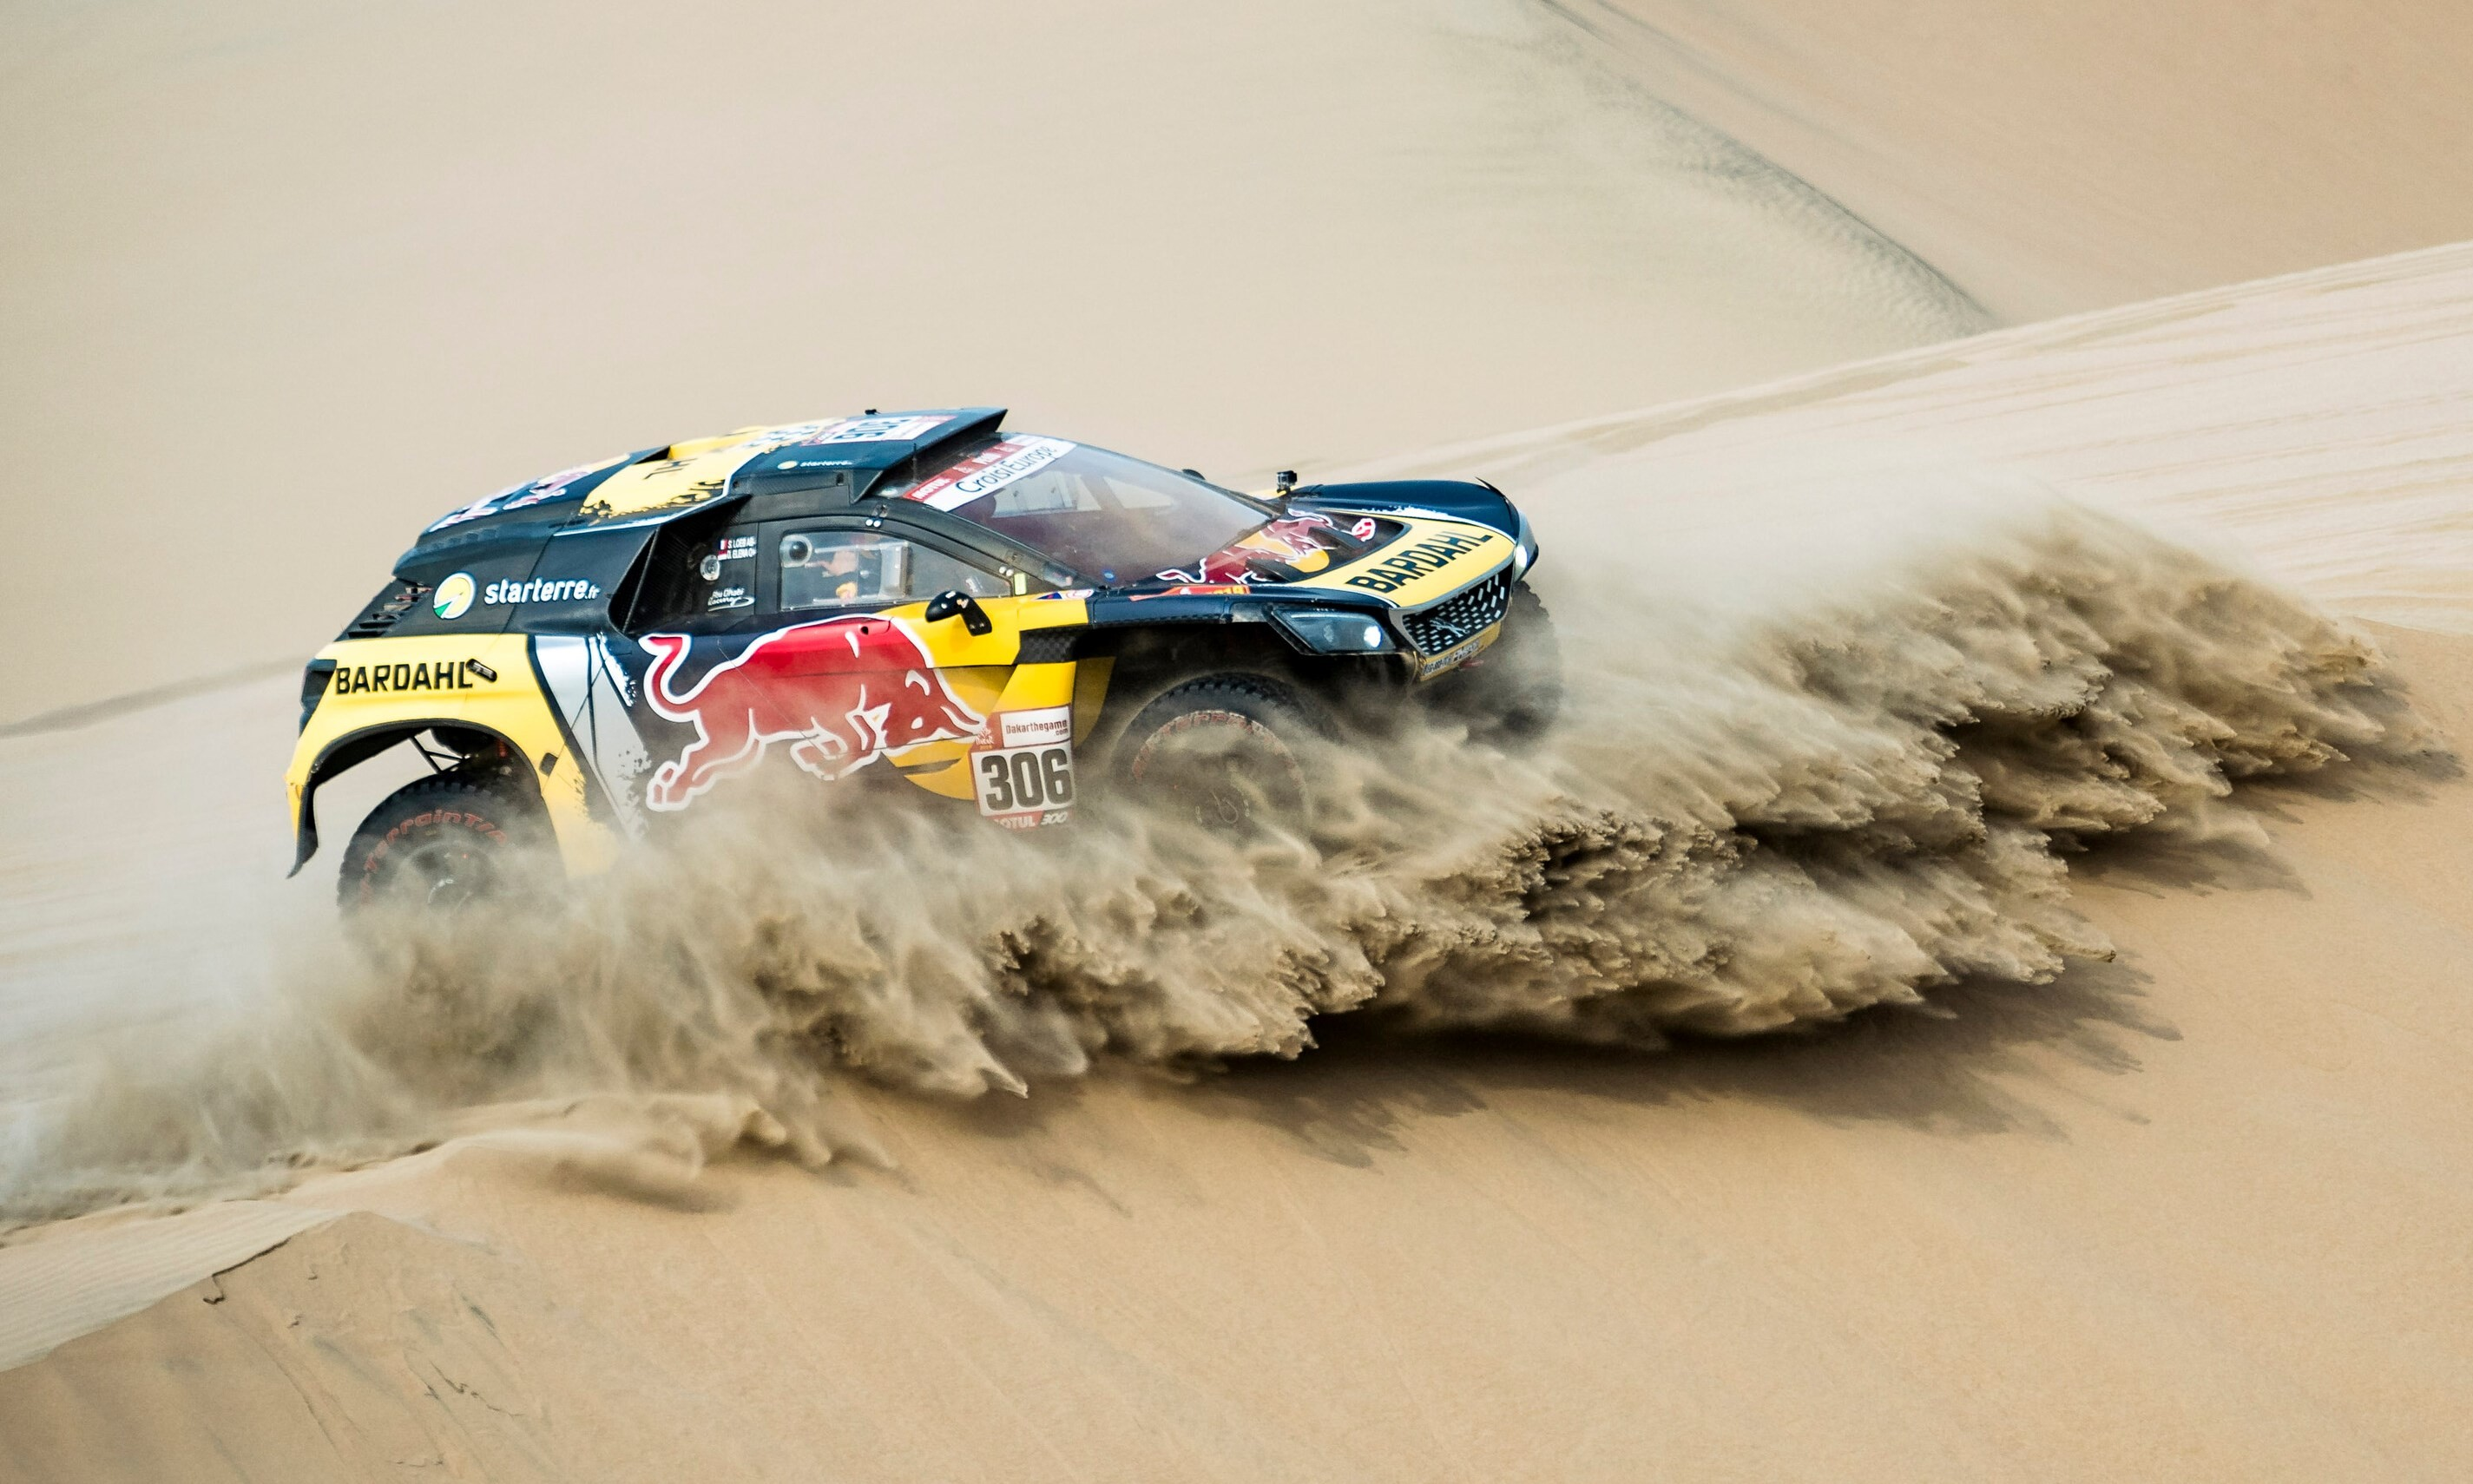 Sebastien Loeb was on a real charge on Dakar Rally stage 10